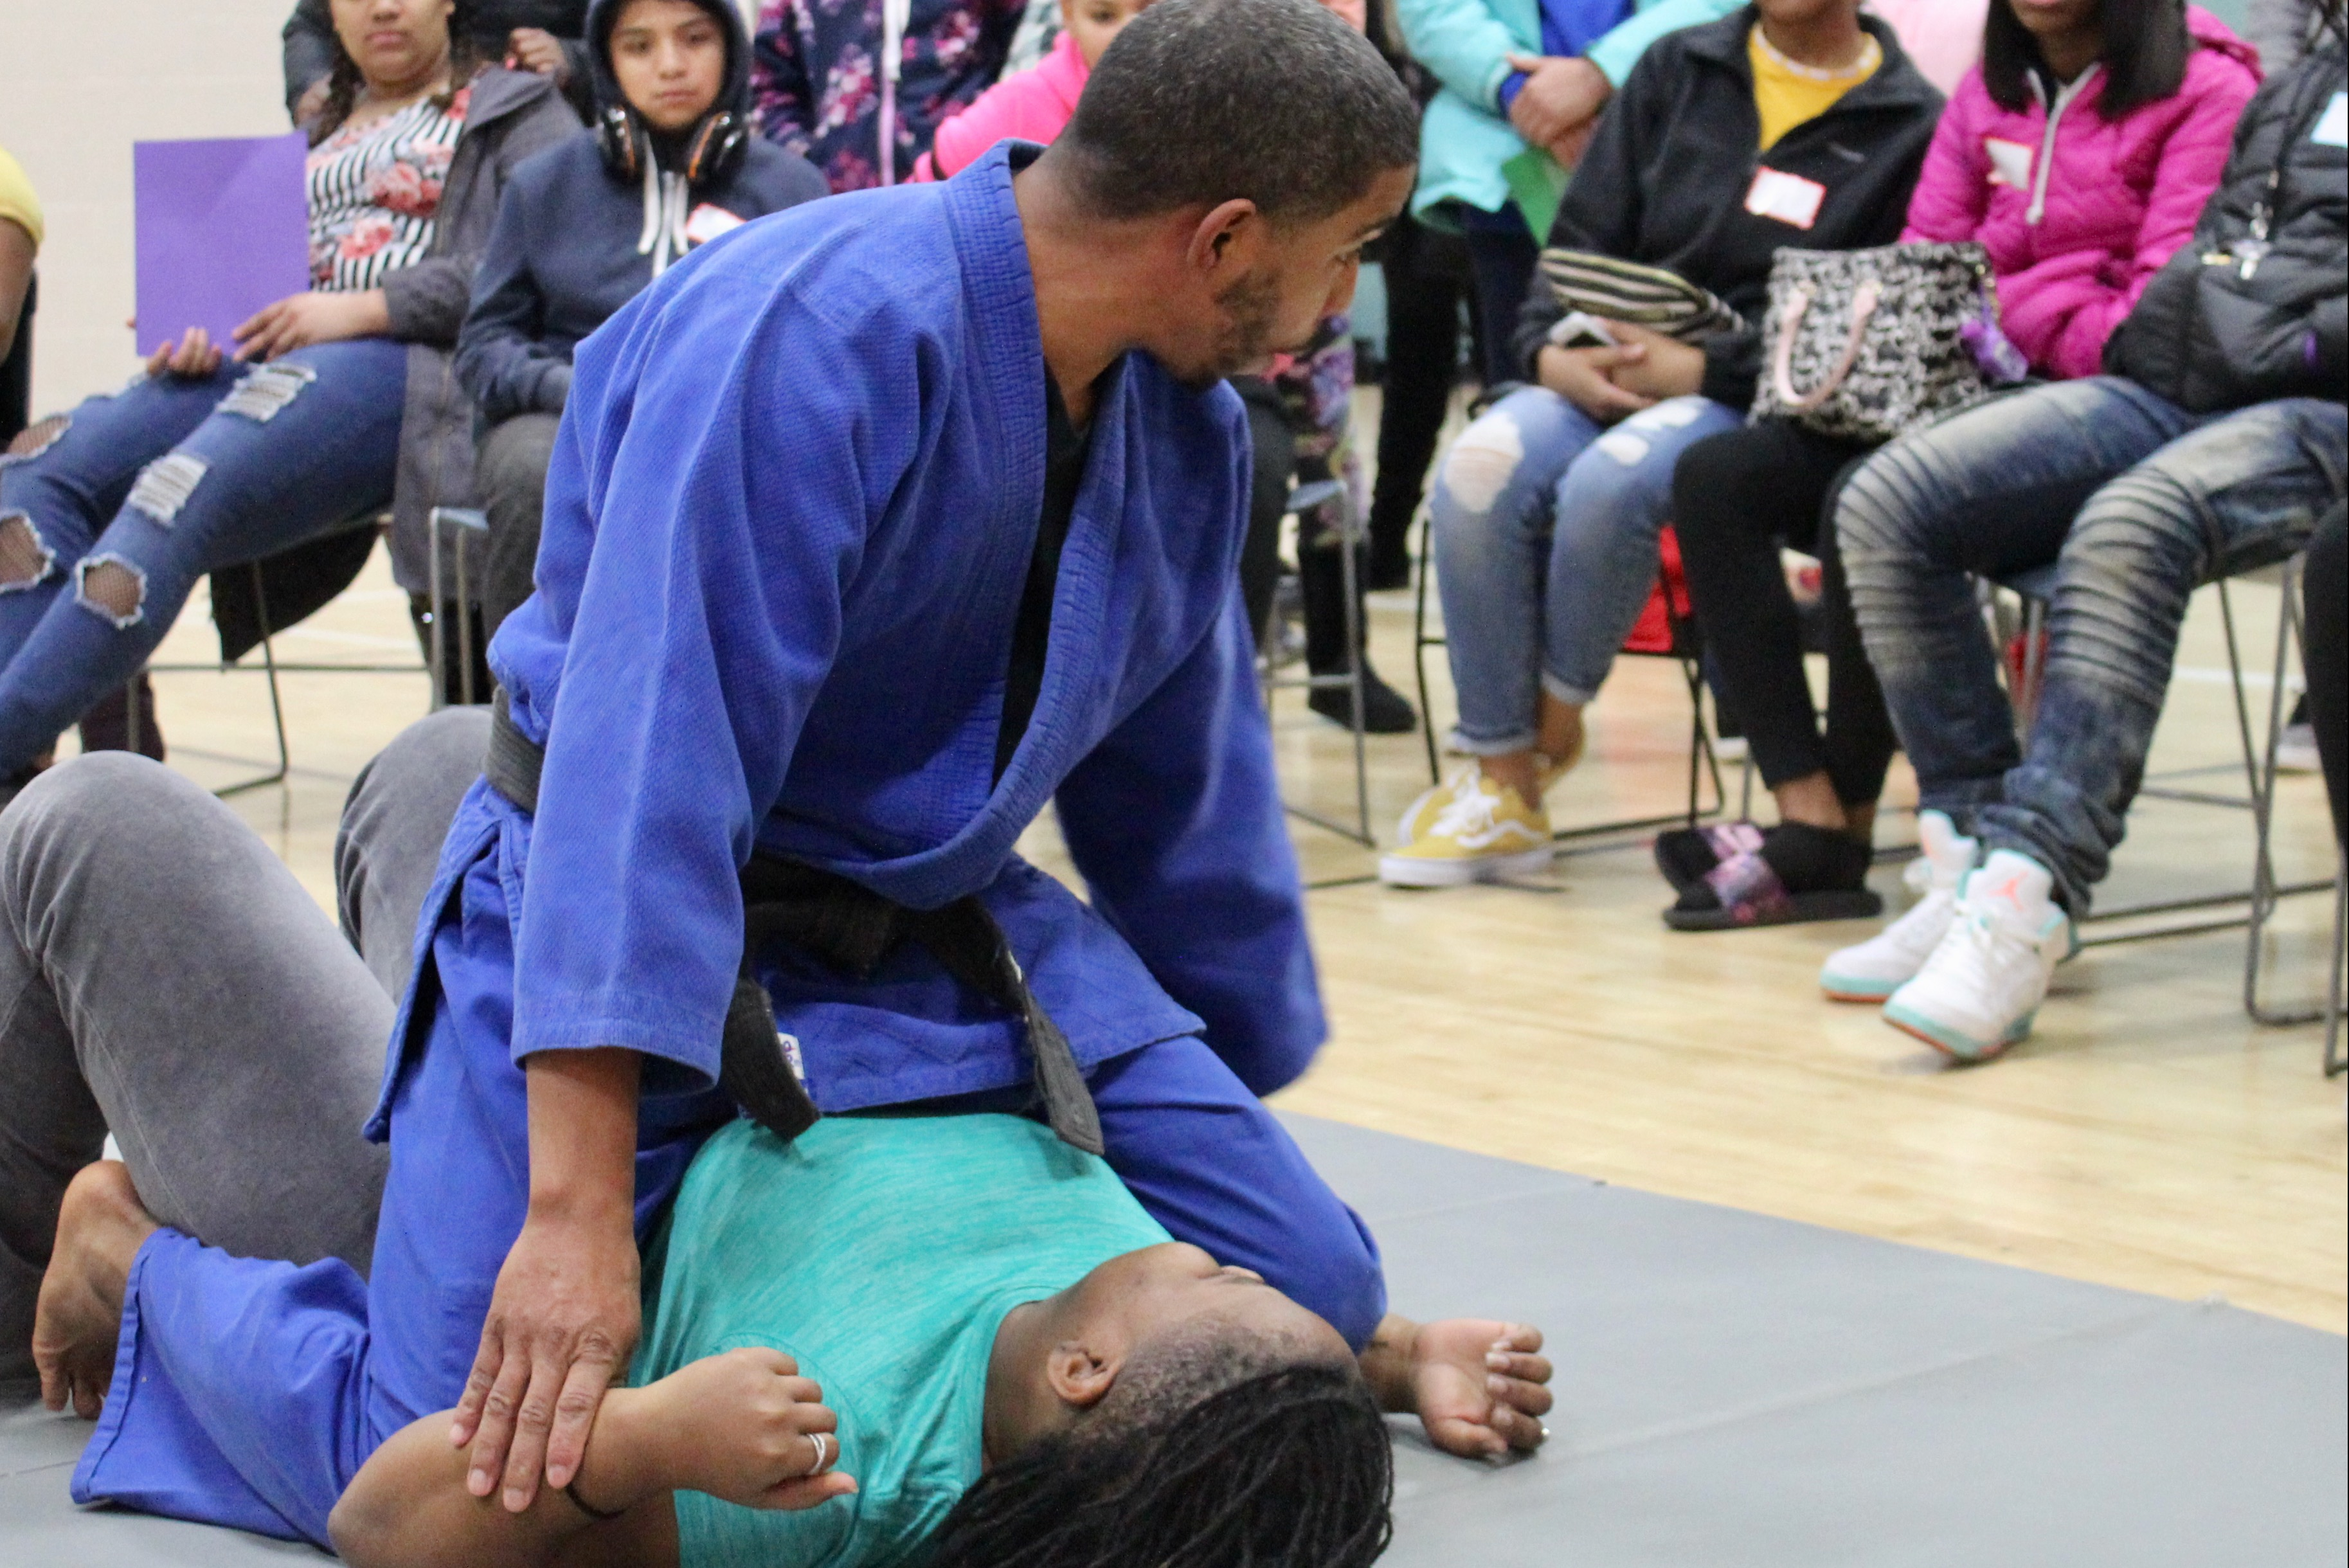 Fred Coleman taught a self-defense class to help girls escape dangerous situations. Photo by Allison Dikanovic/NNS.